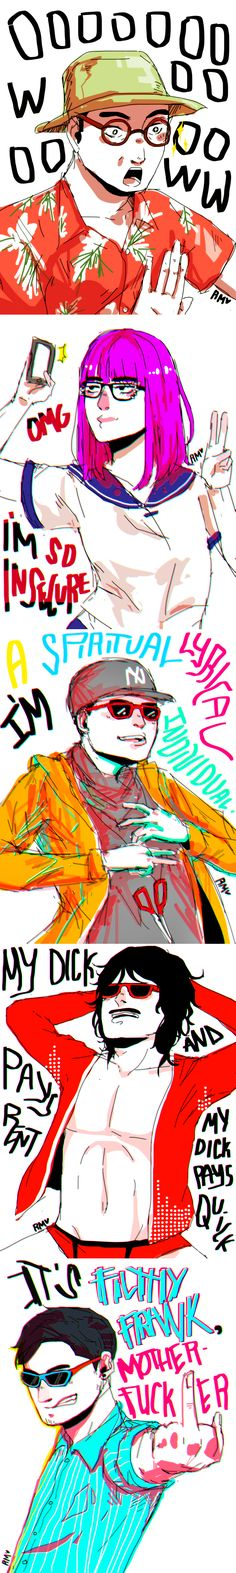 Filthy Frank Characters Doodle 2 by mikkie12 - this is great! Kudos on whoever drew this